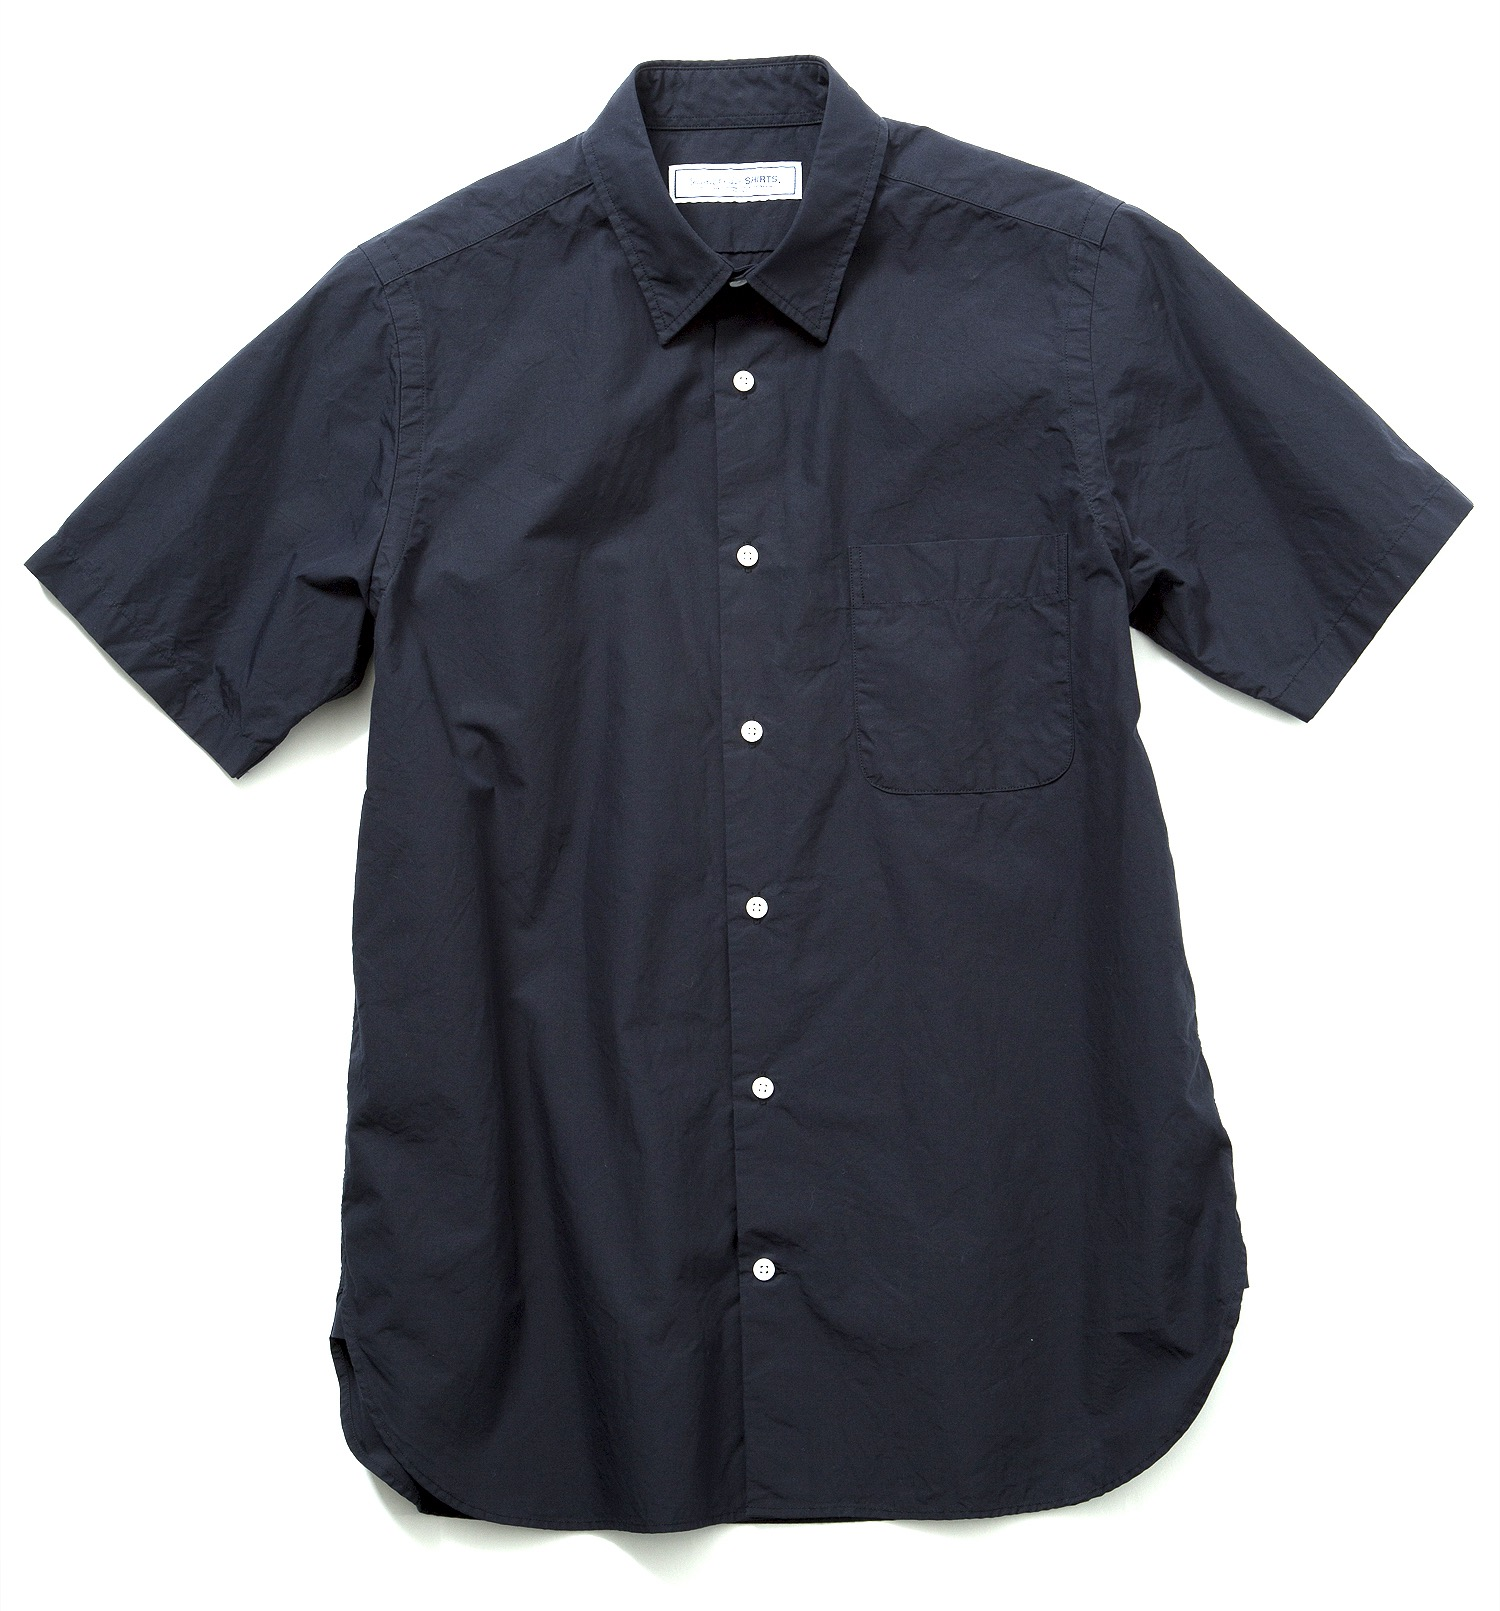 UNIVERSAL PRODUCTS SHORT SLEEVE SHIRTS